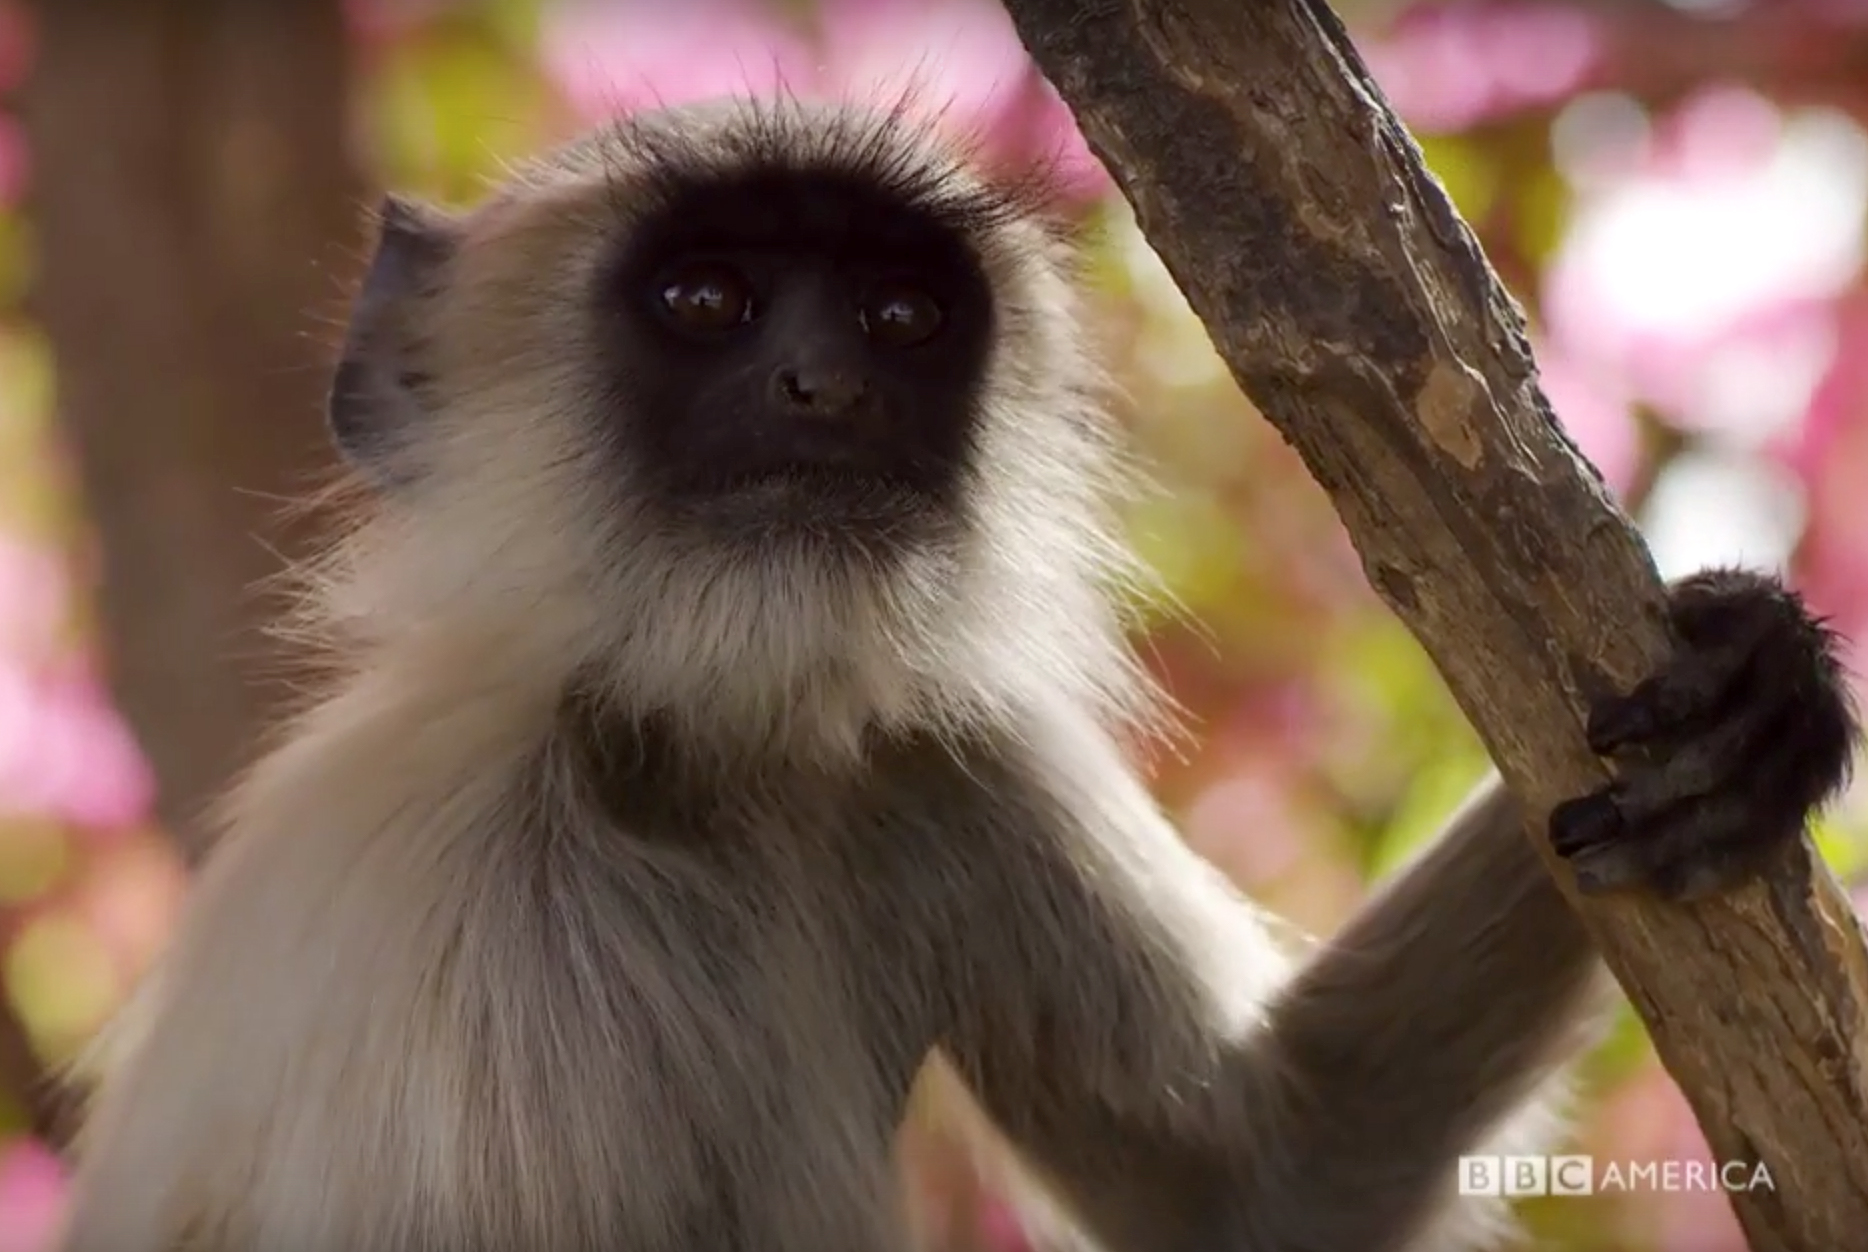 BBC Planet Earth 2 monkey